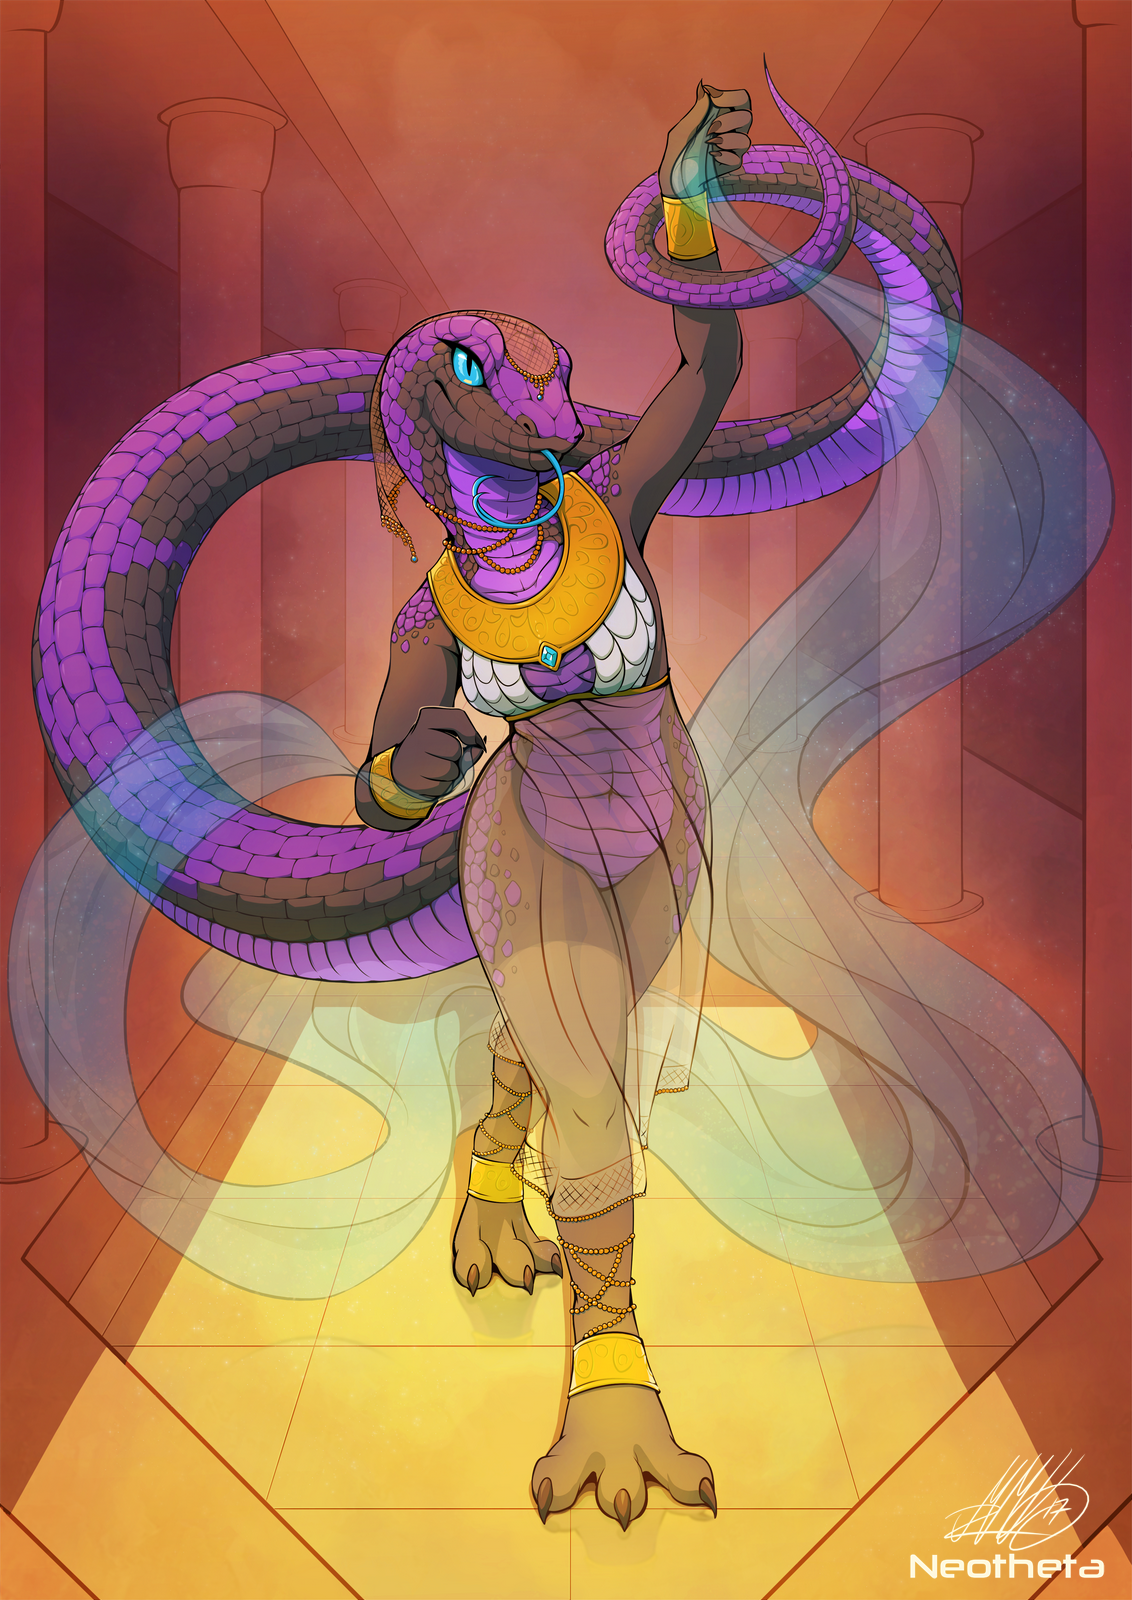 Snake Dance by Neotheta on FurAffinity